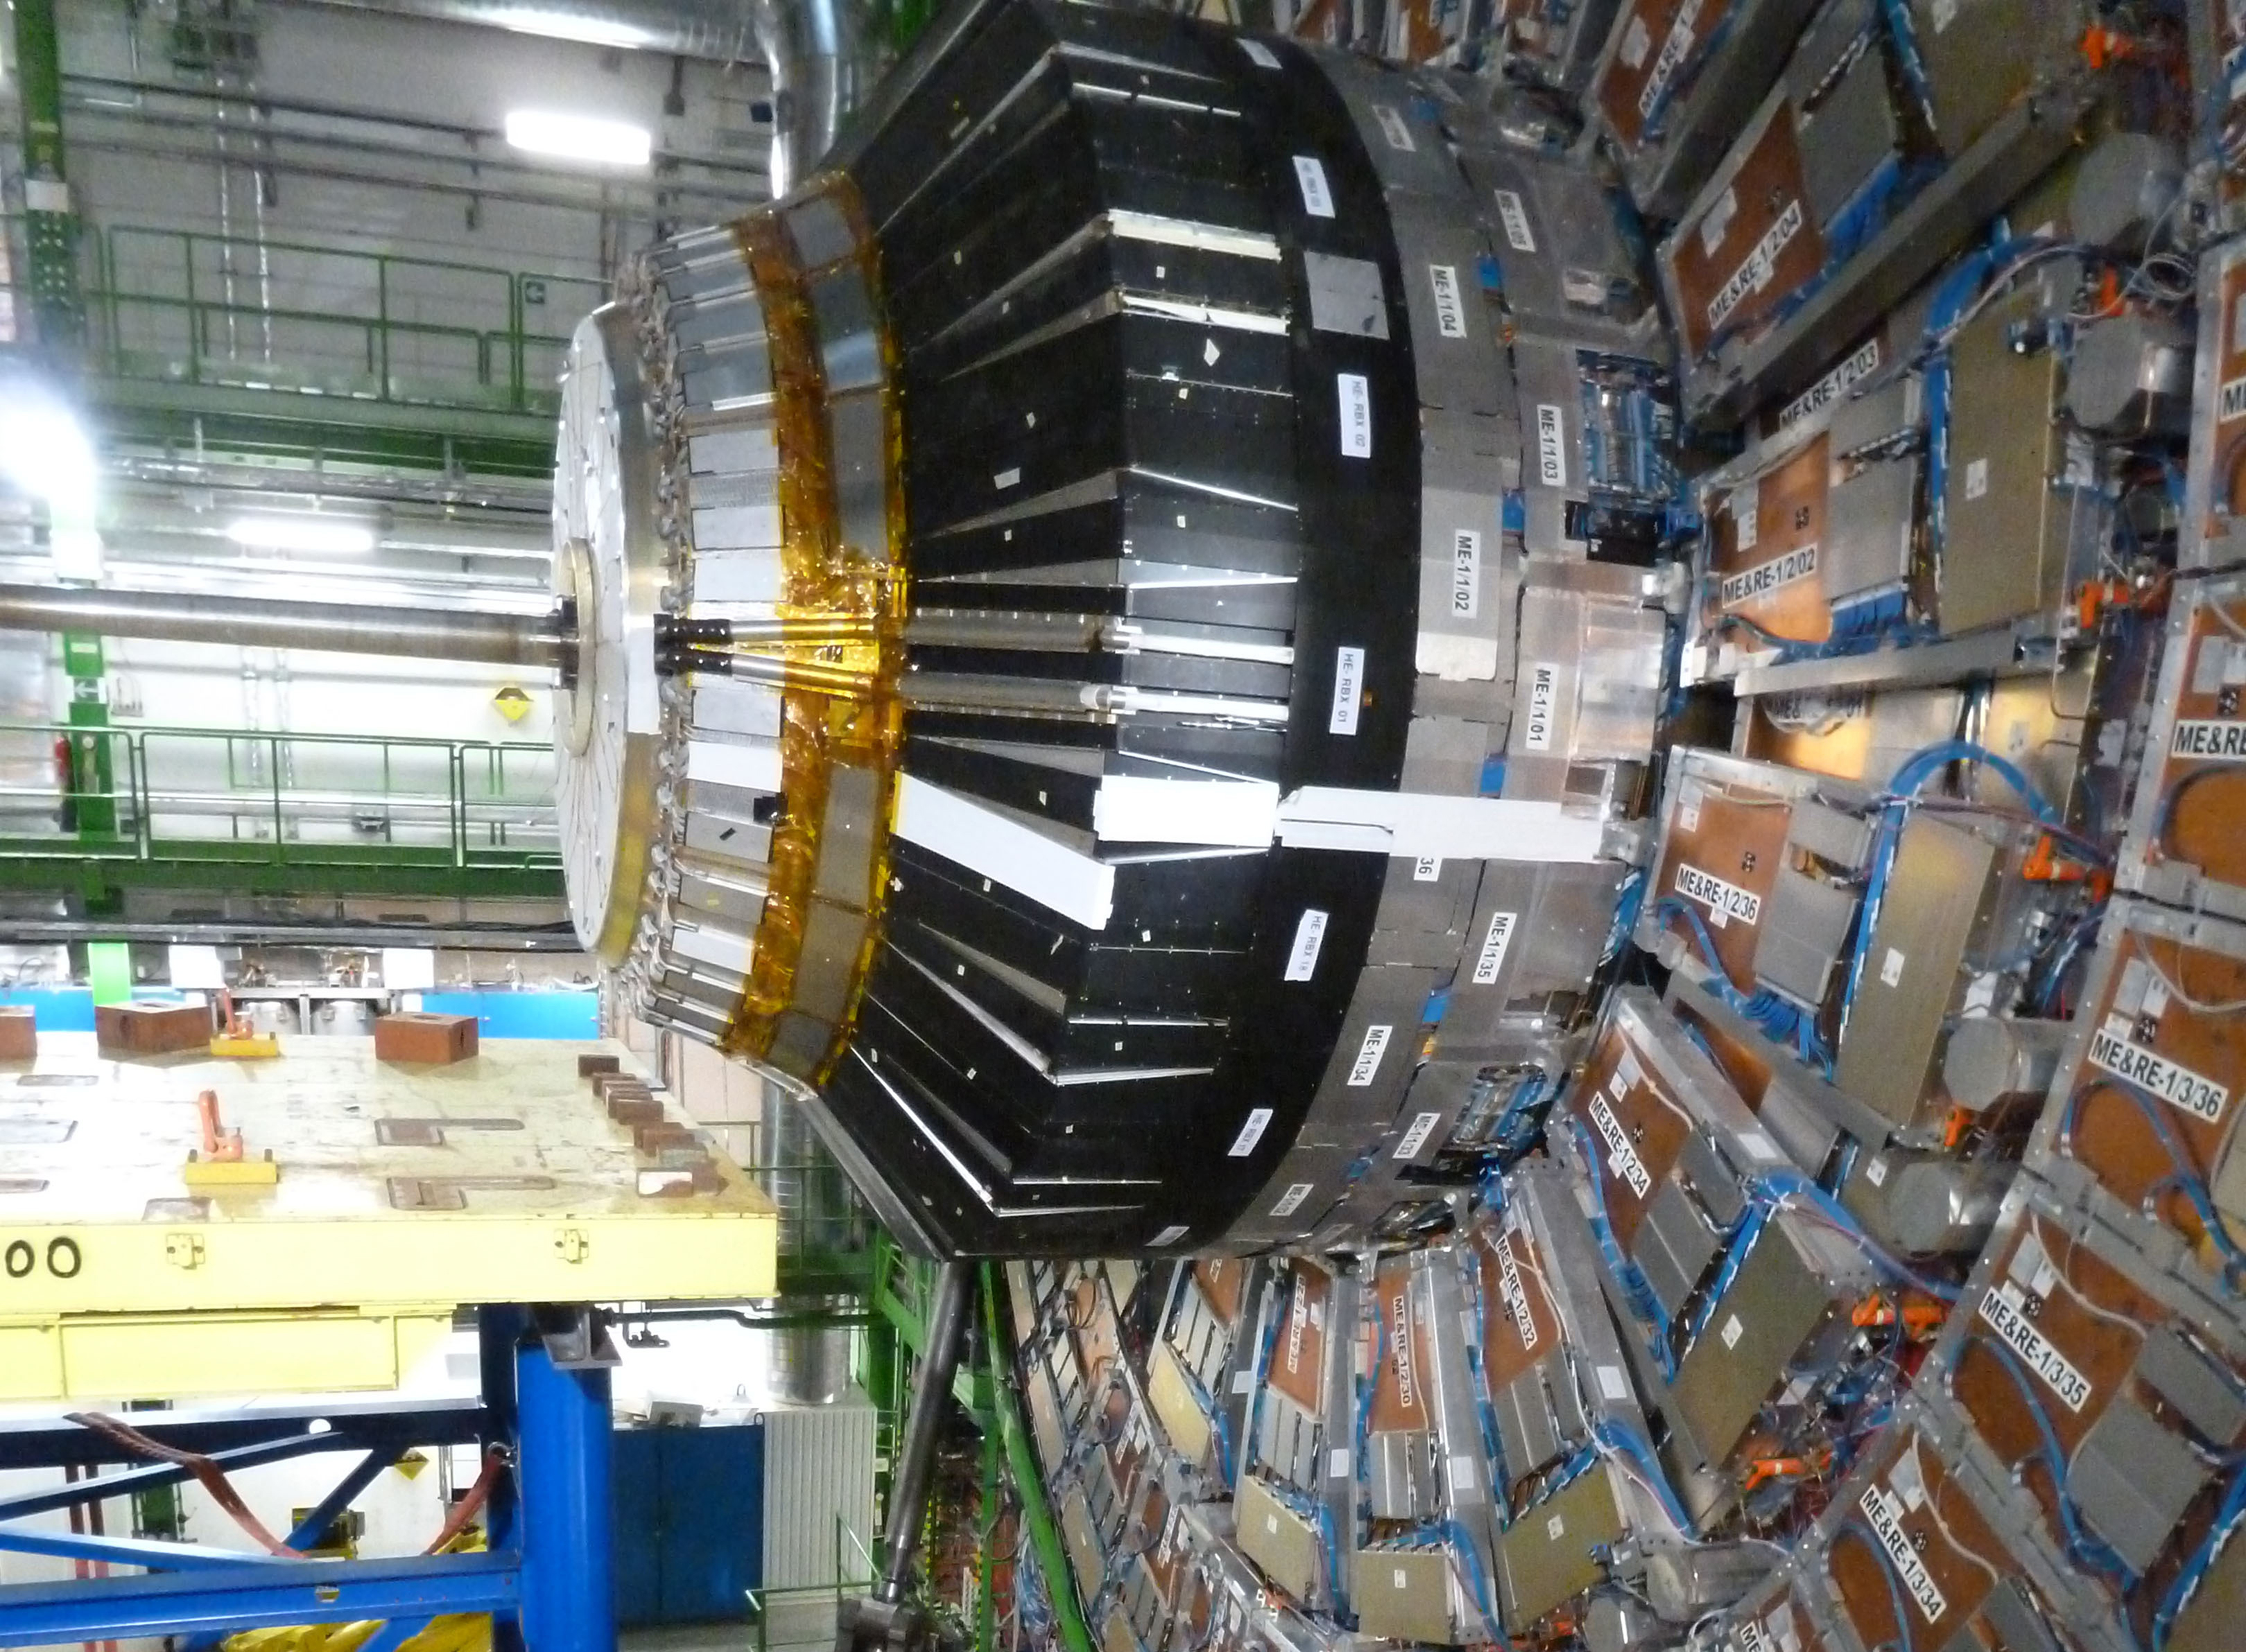 Manchester physicist helps discover new particle at CERN